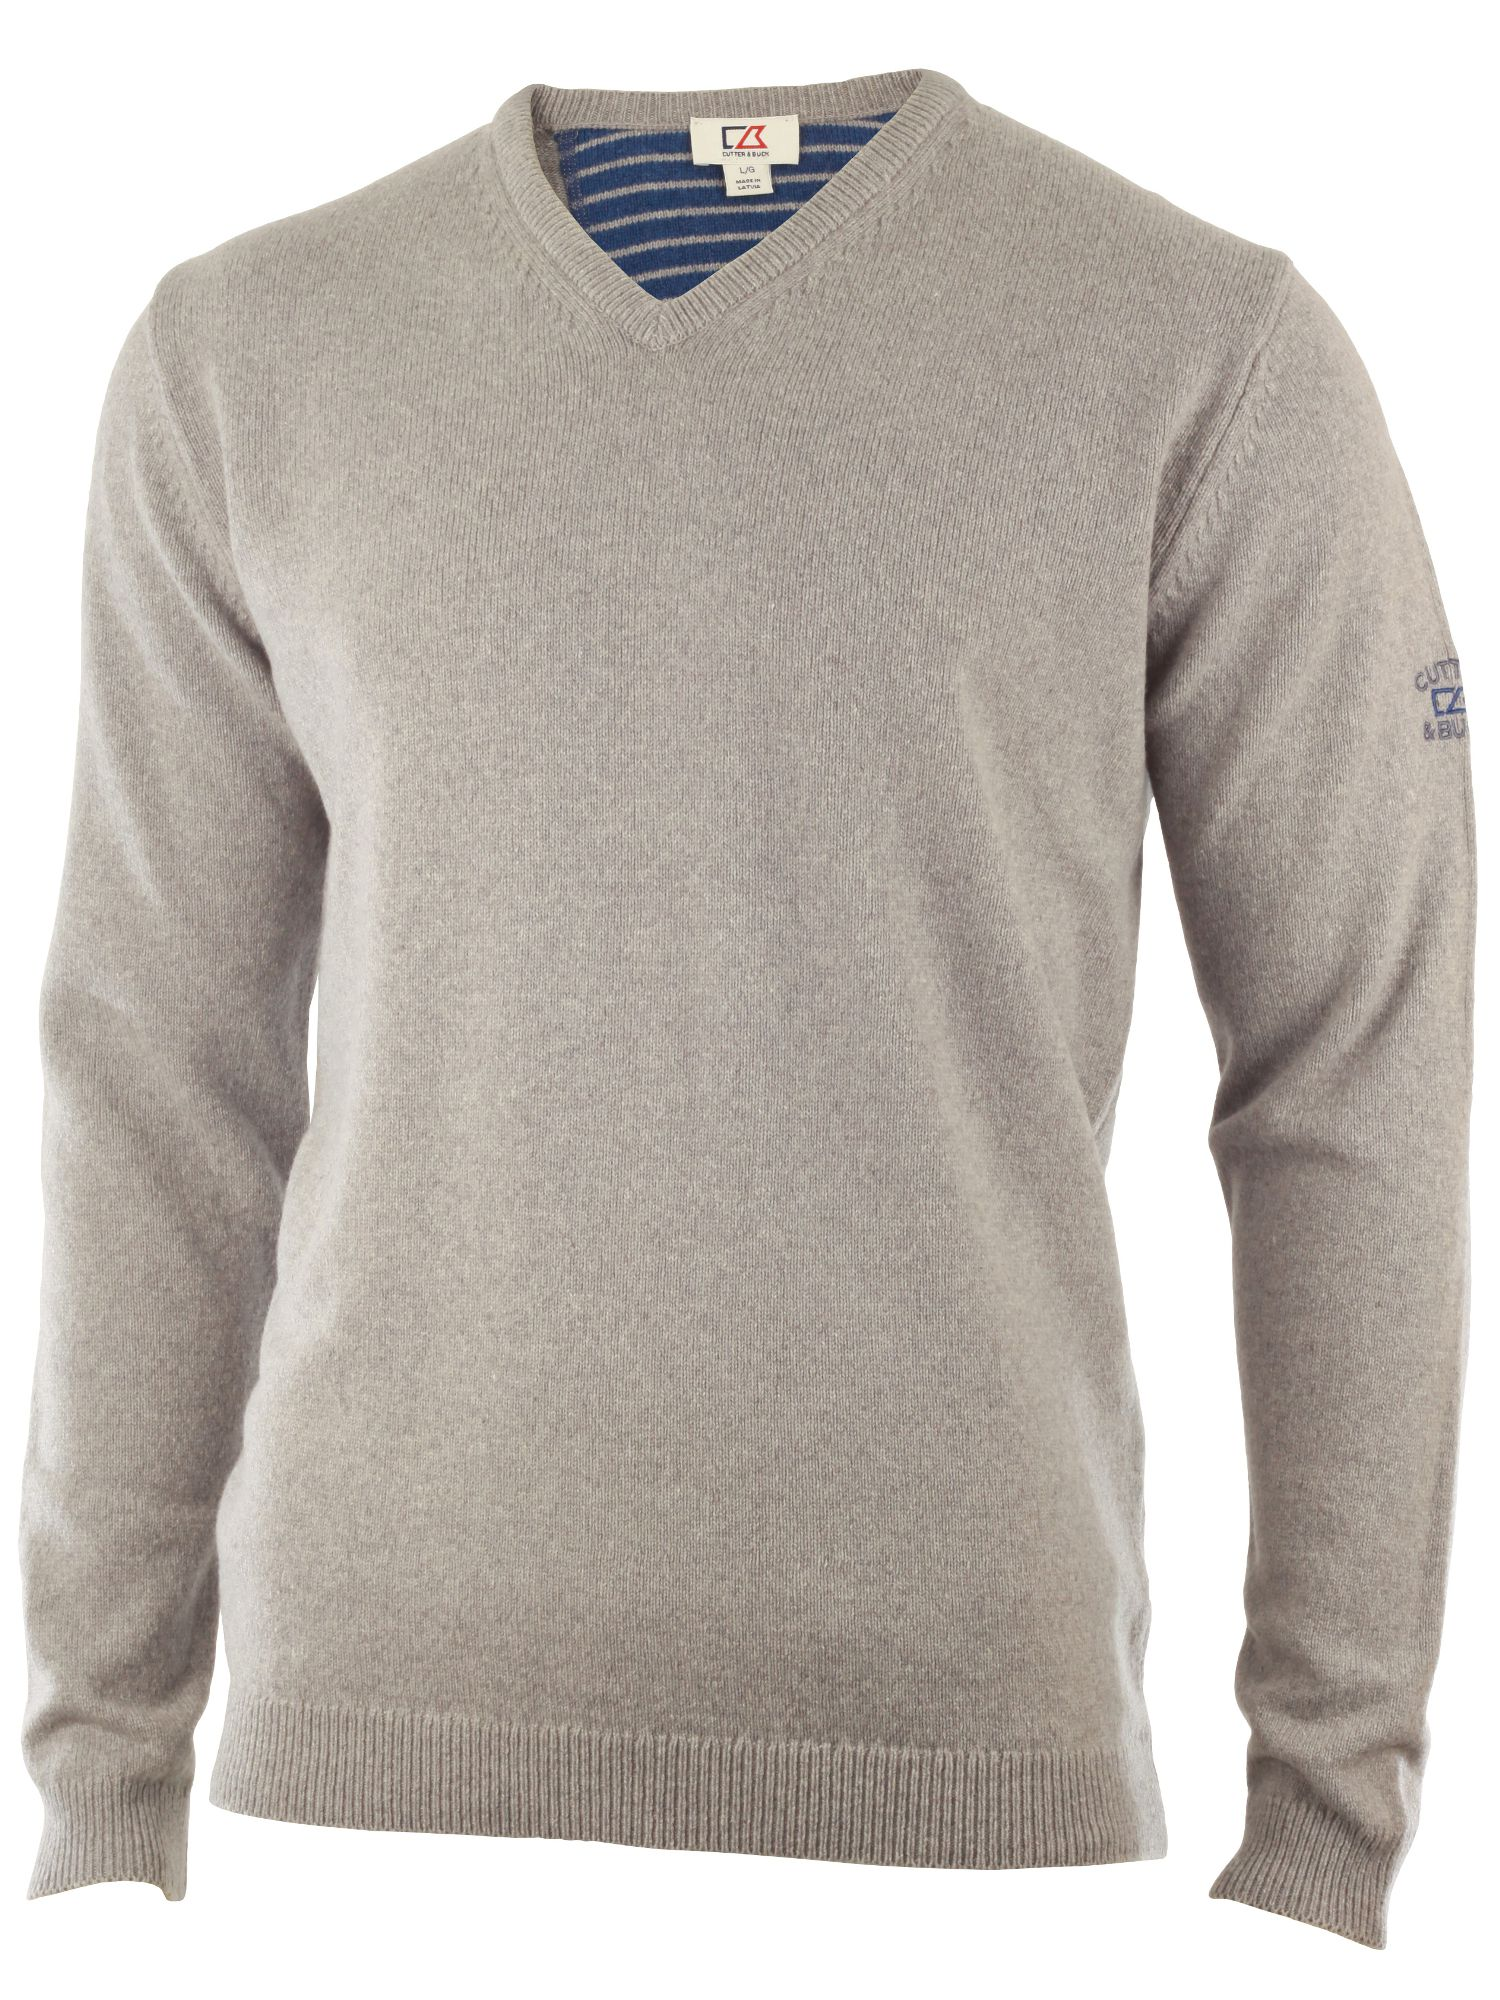 Cutter and Buck Men's Cutter and Buck Lambswool v neck sweater, Silver